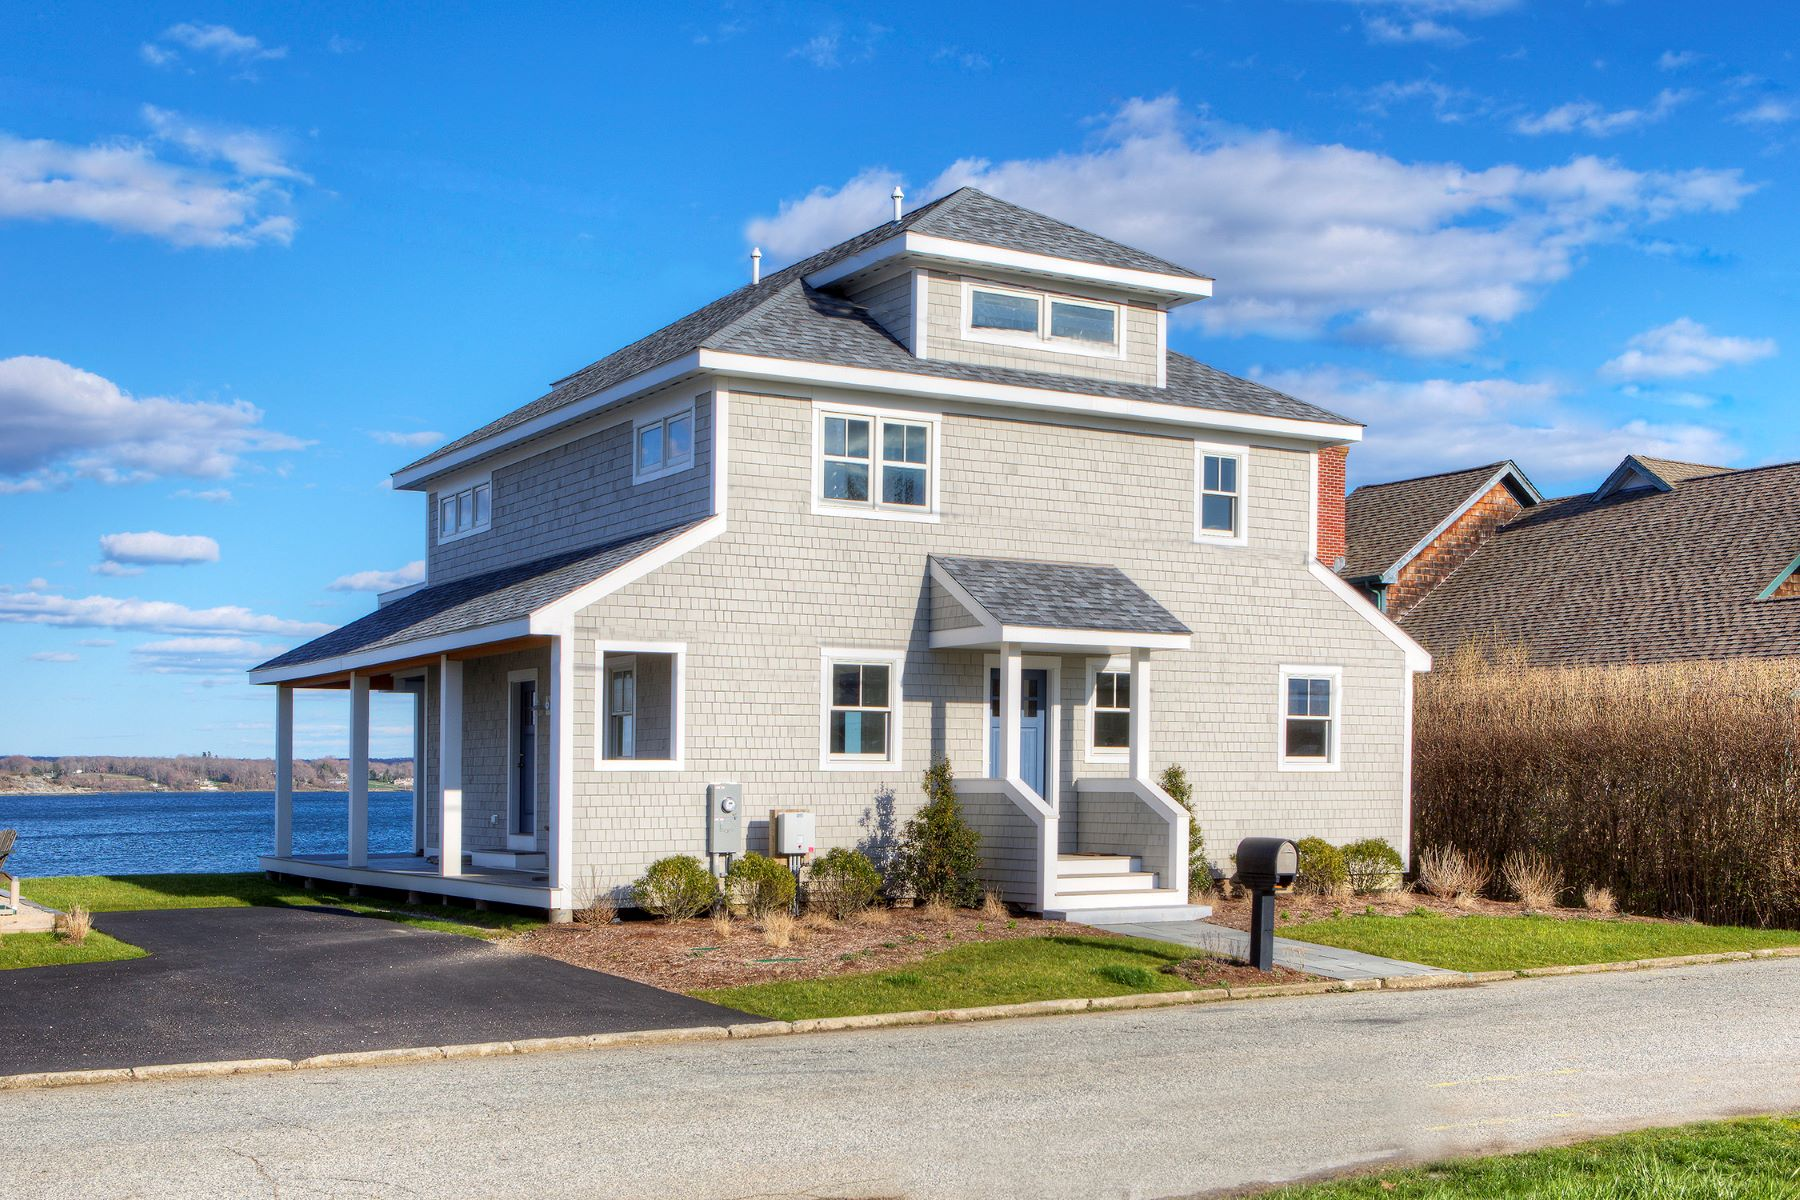 Single Family Homes for Sale at Waterfront Retreat 48 Aquidneck Avenue Portsmouth, Rhode Island 02871 United States